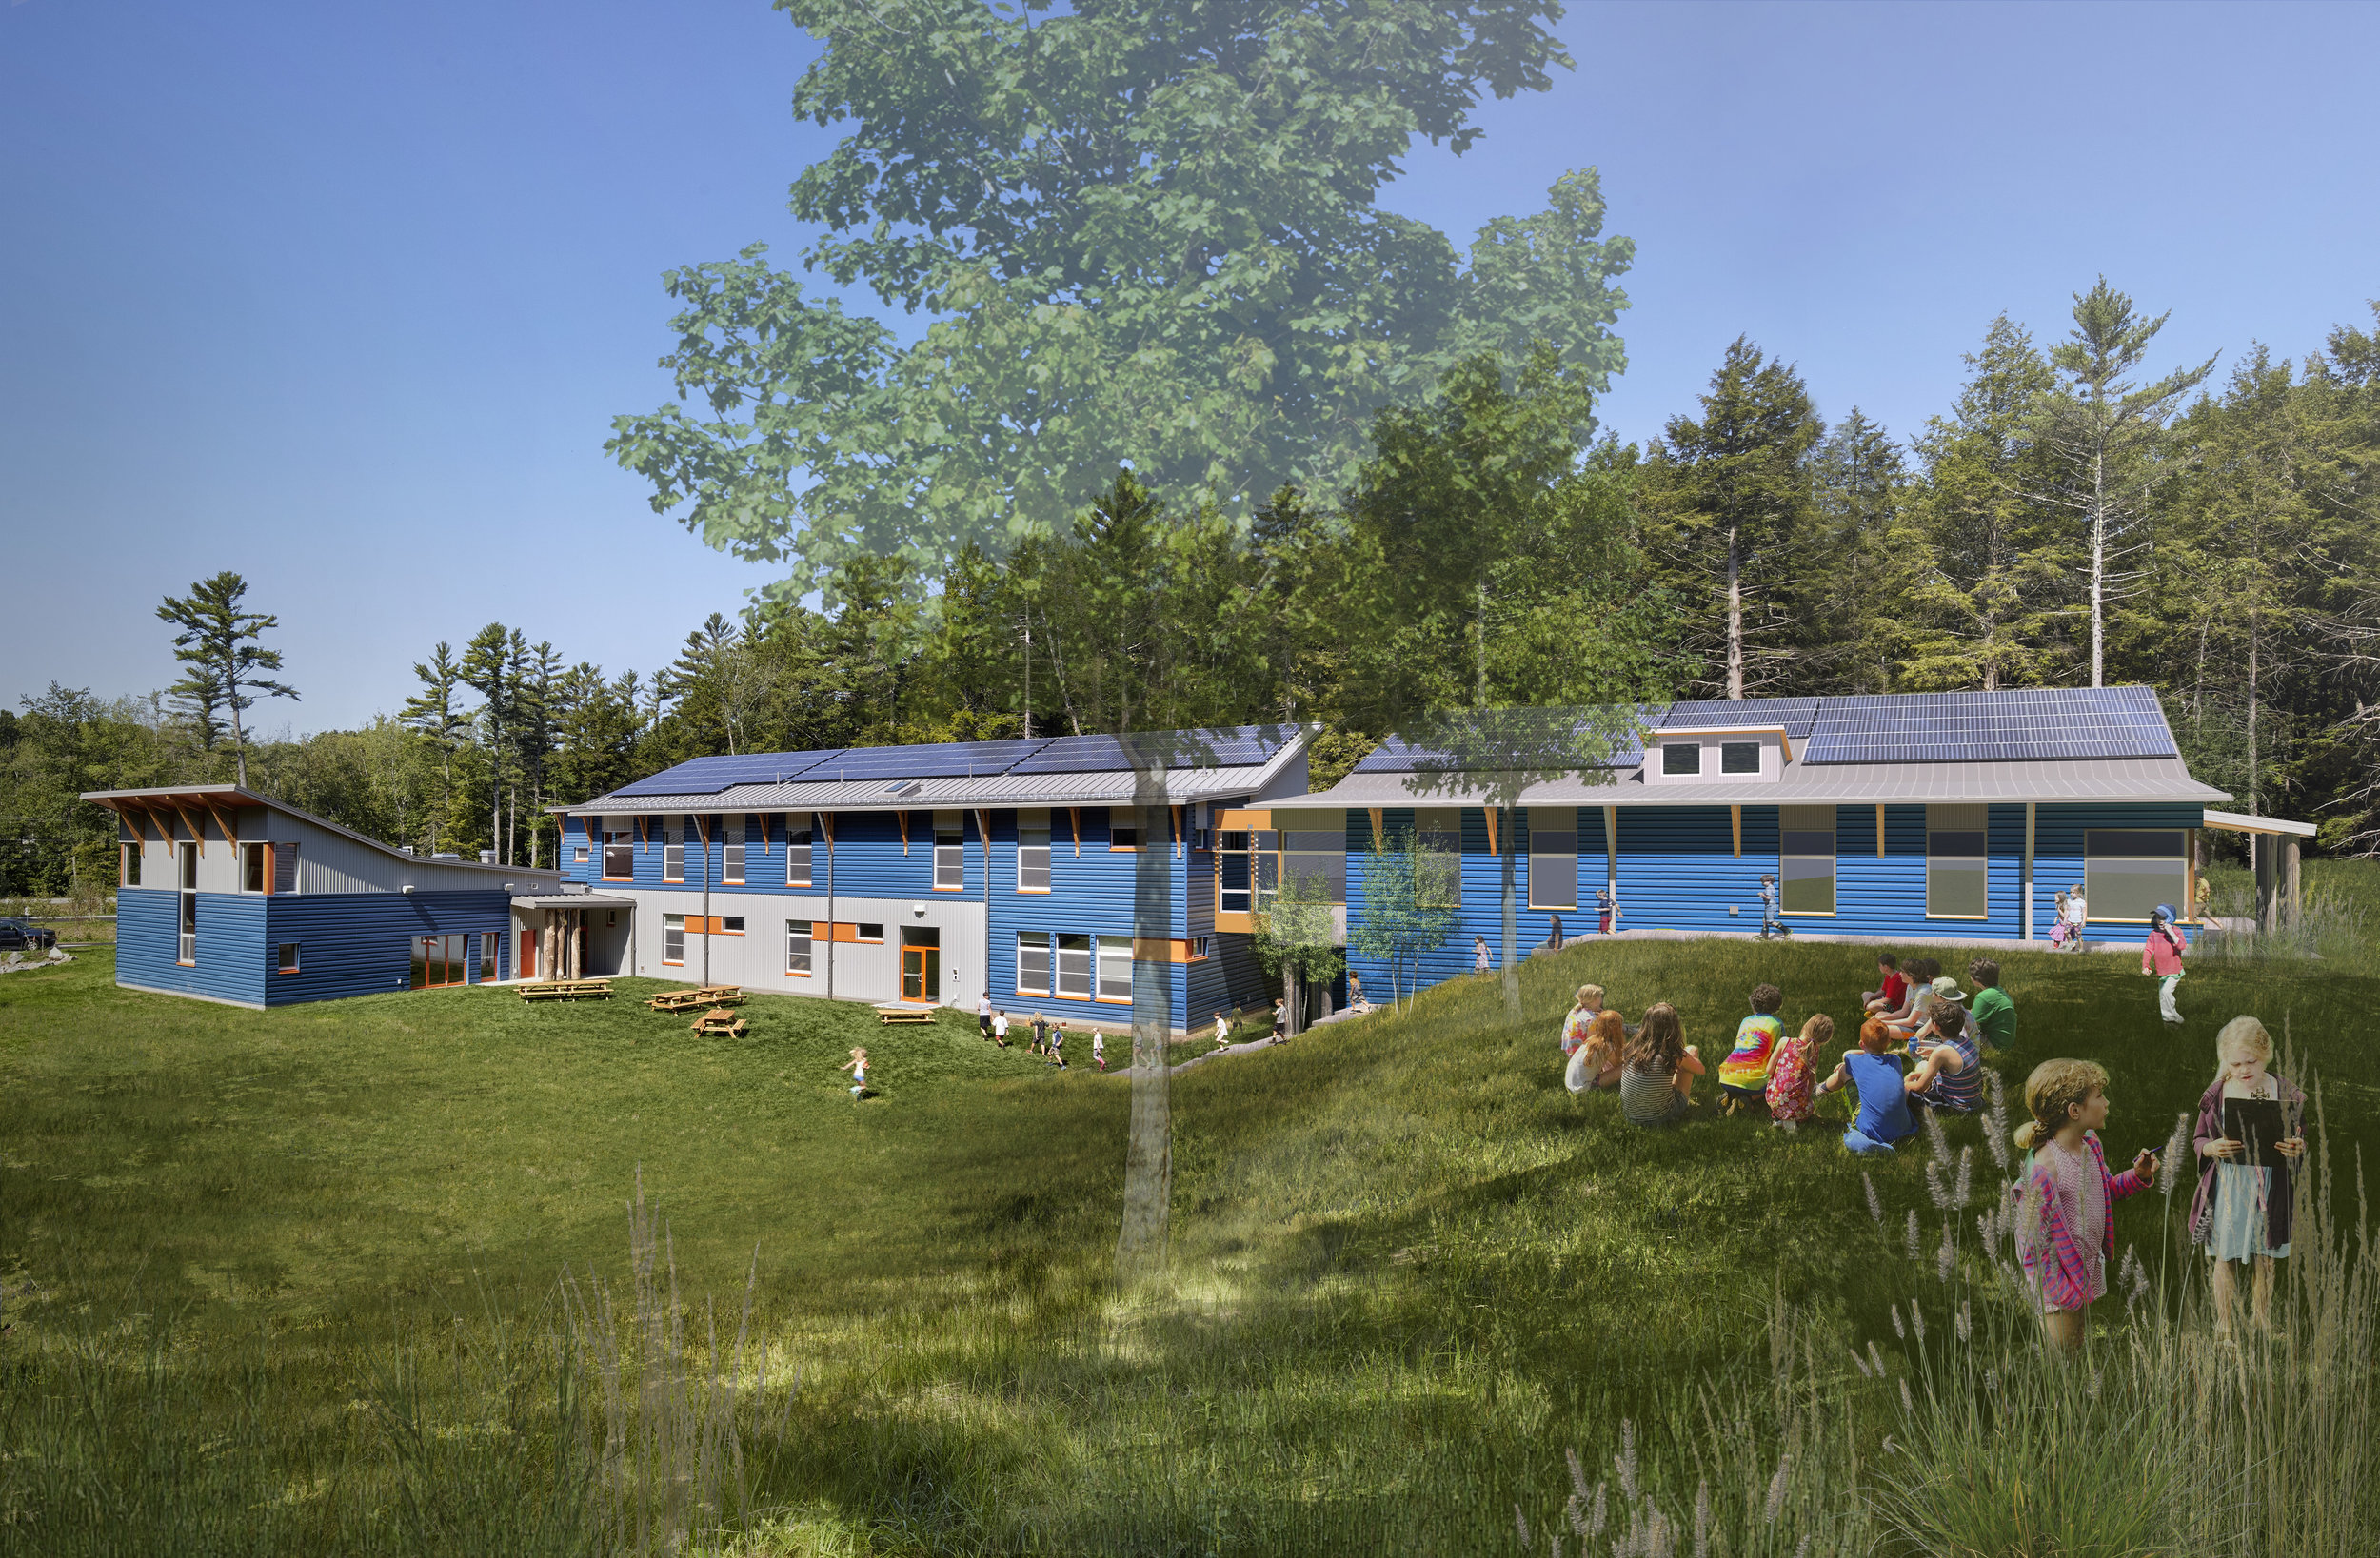 This rendering shows the proposed middle school wing on the right.